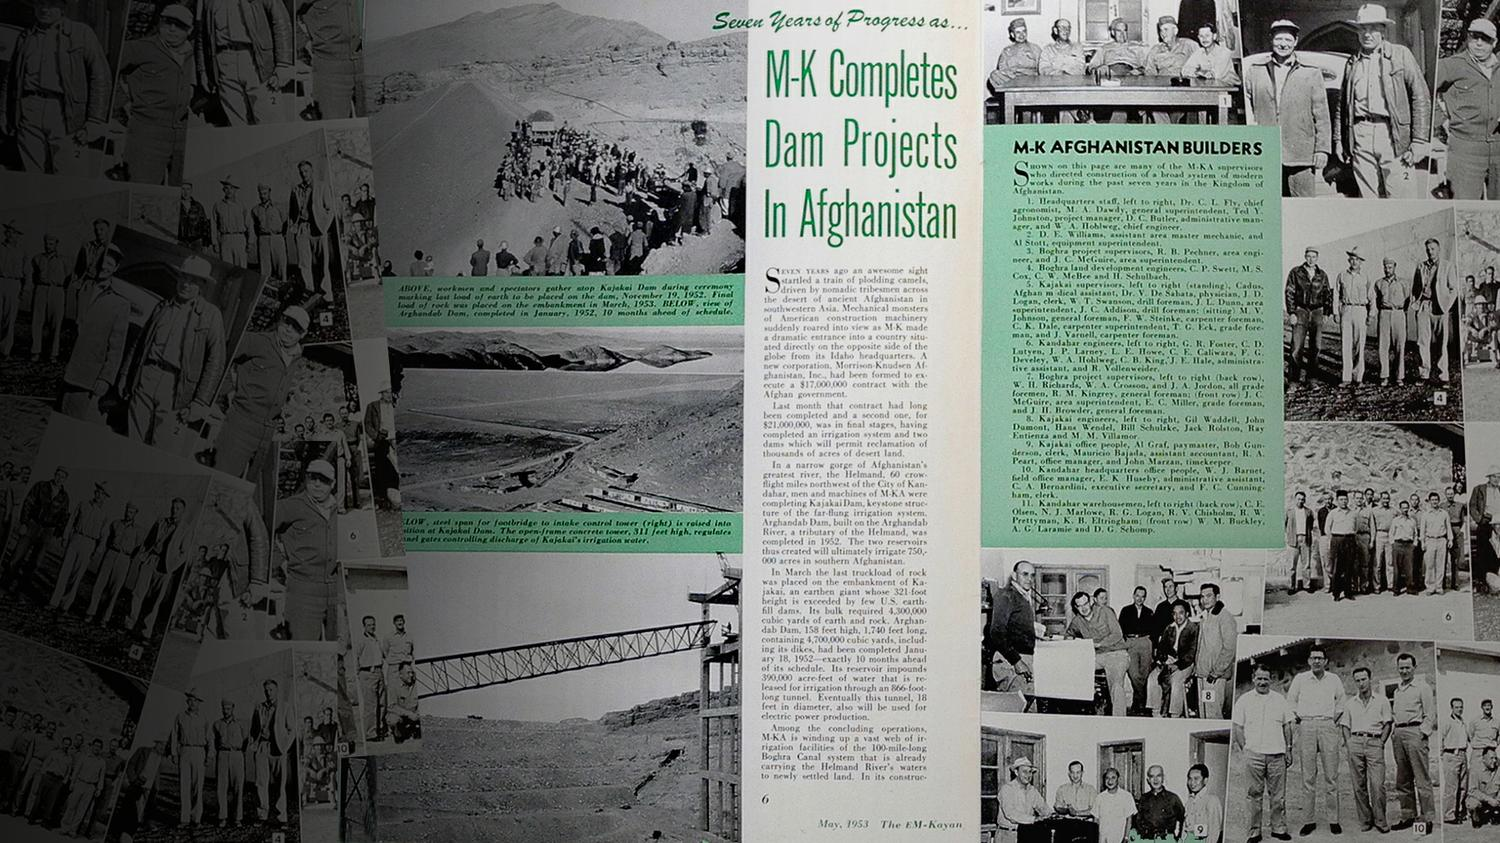 M-K Completes Dam Projects in Afghanistan